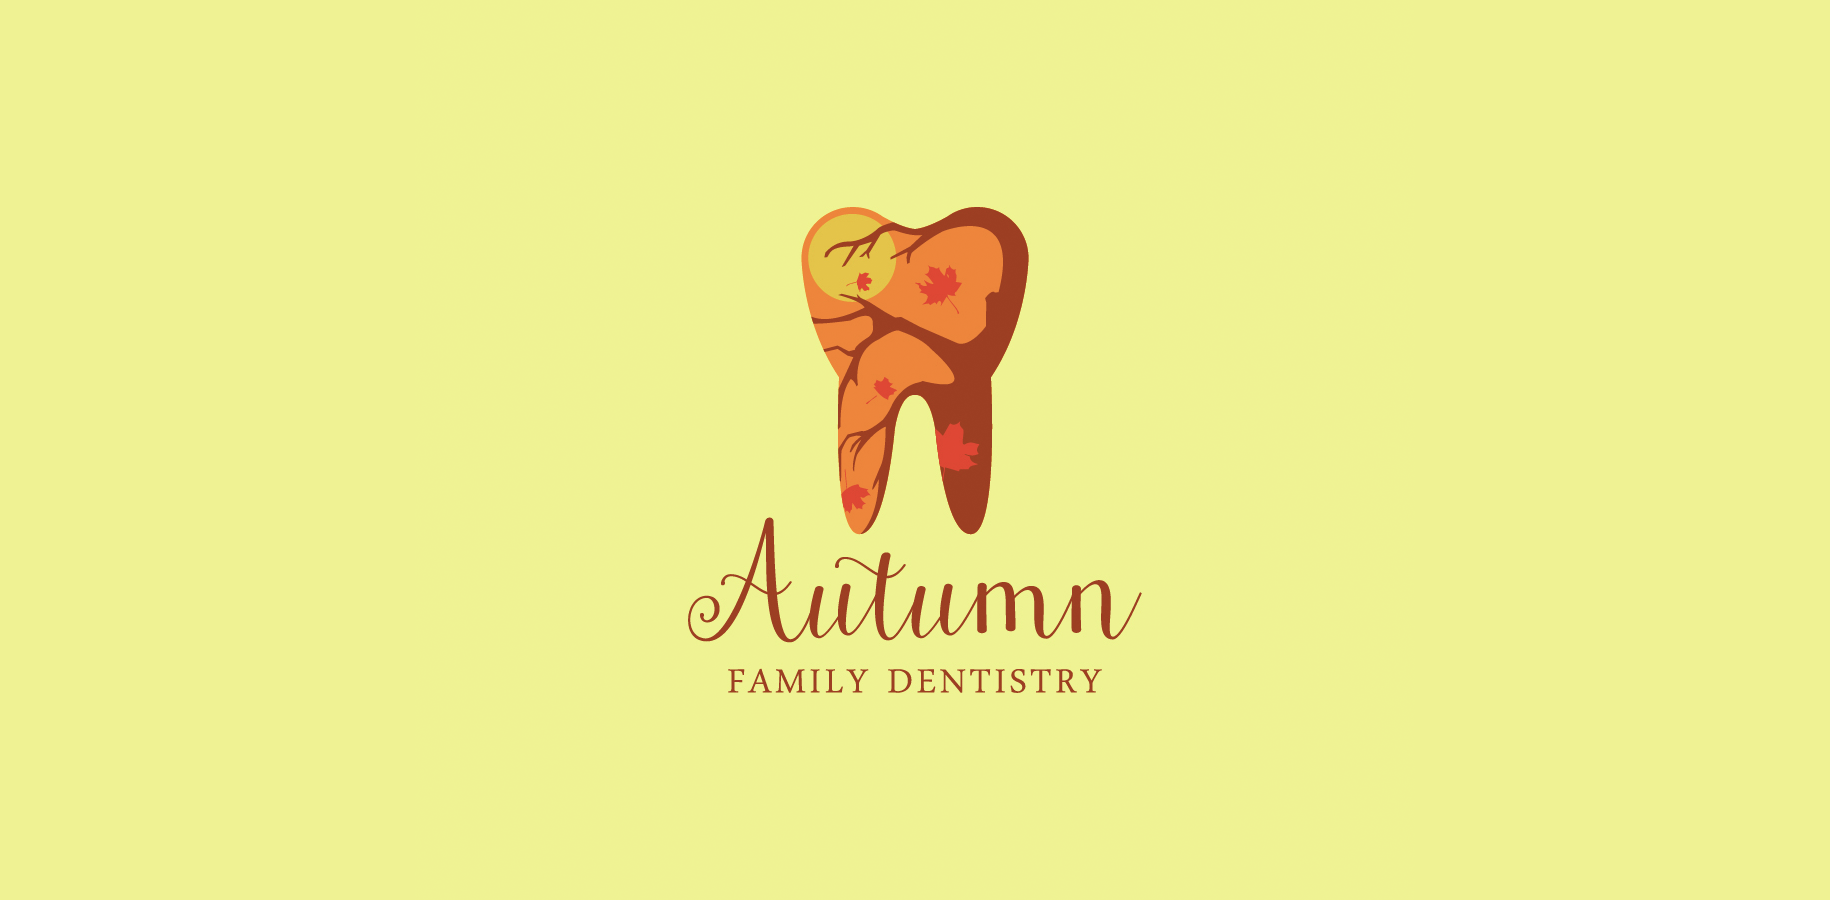 autumn family dentistry logo